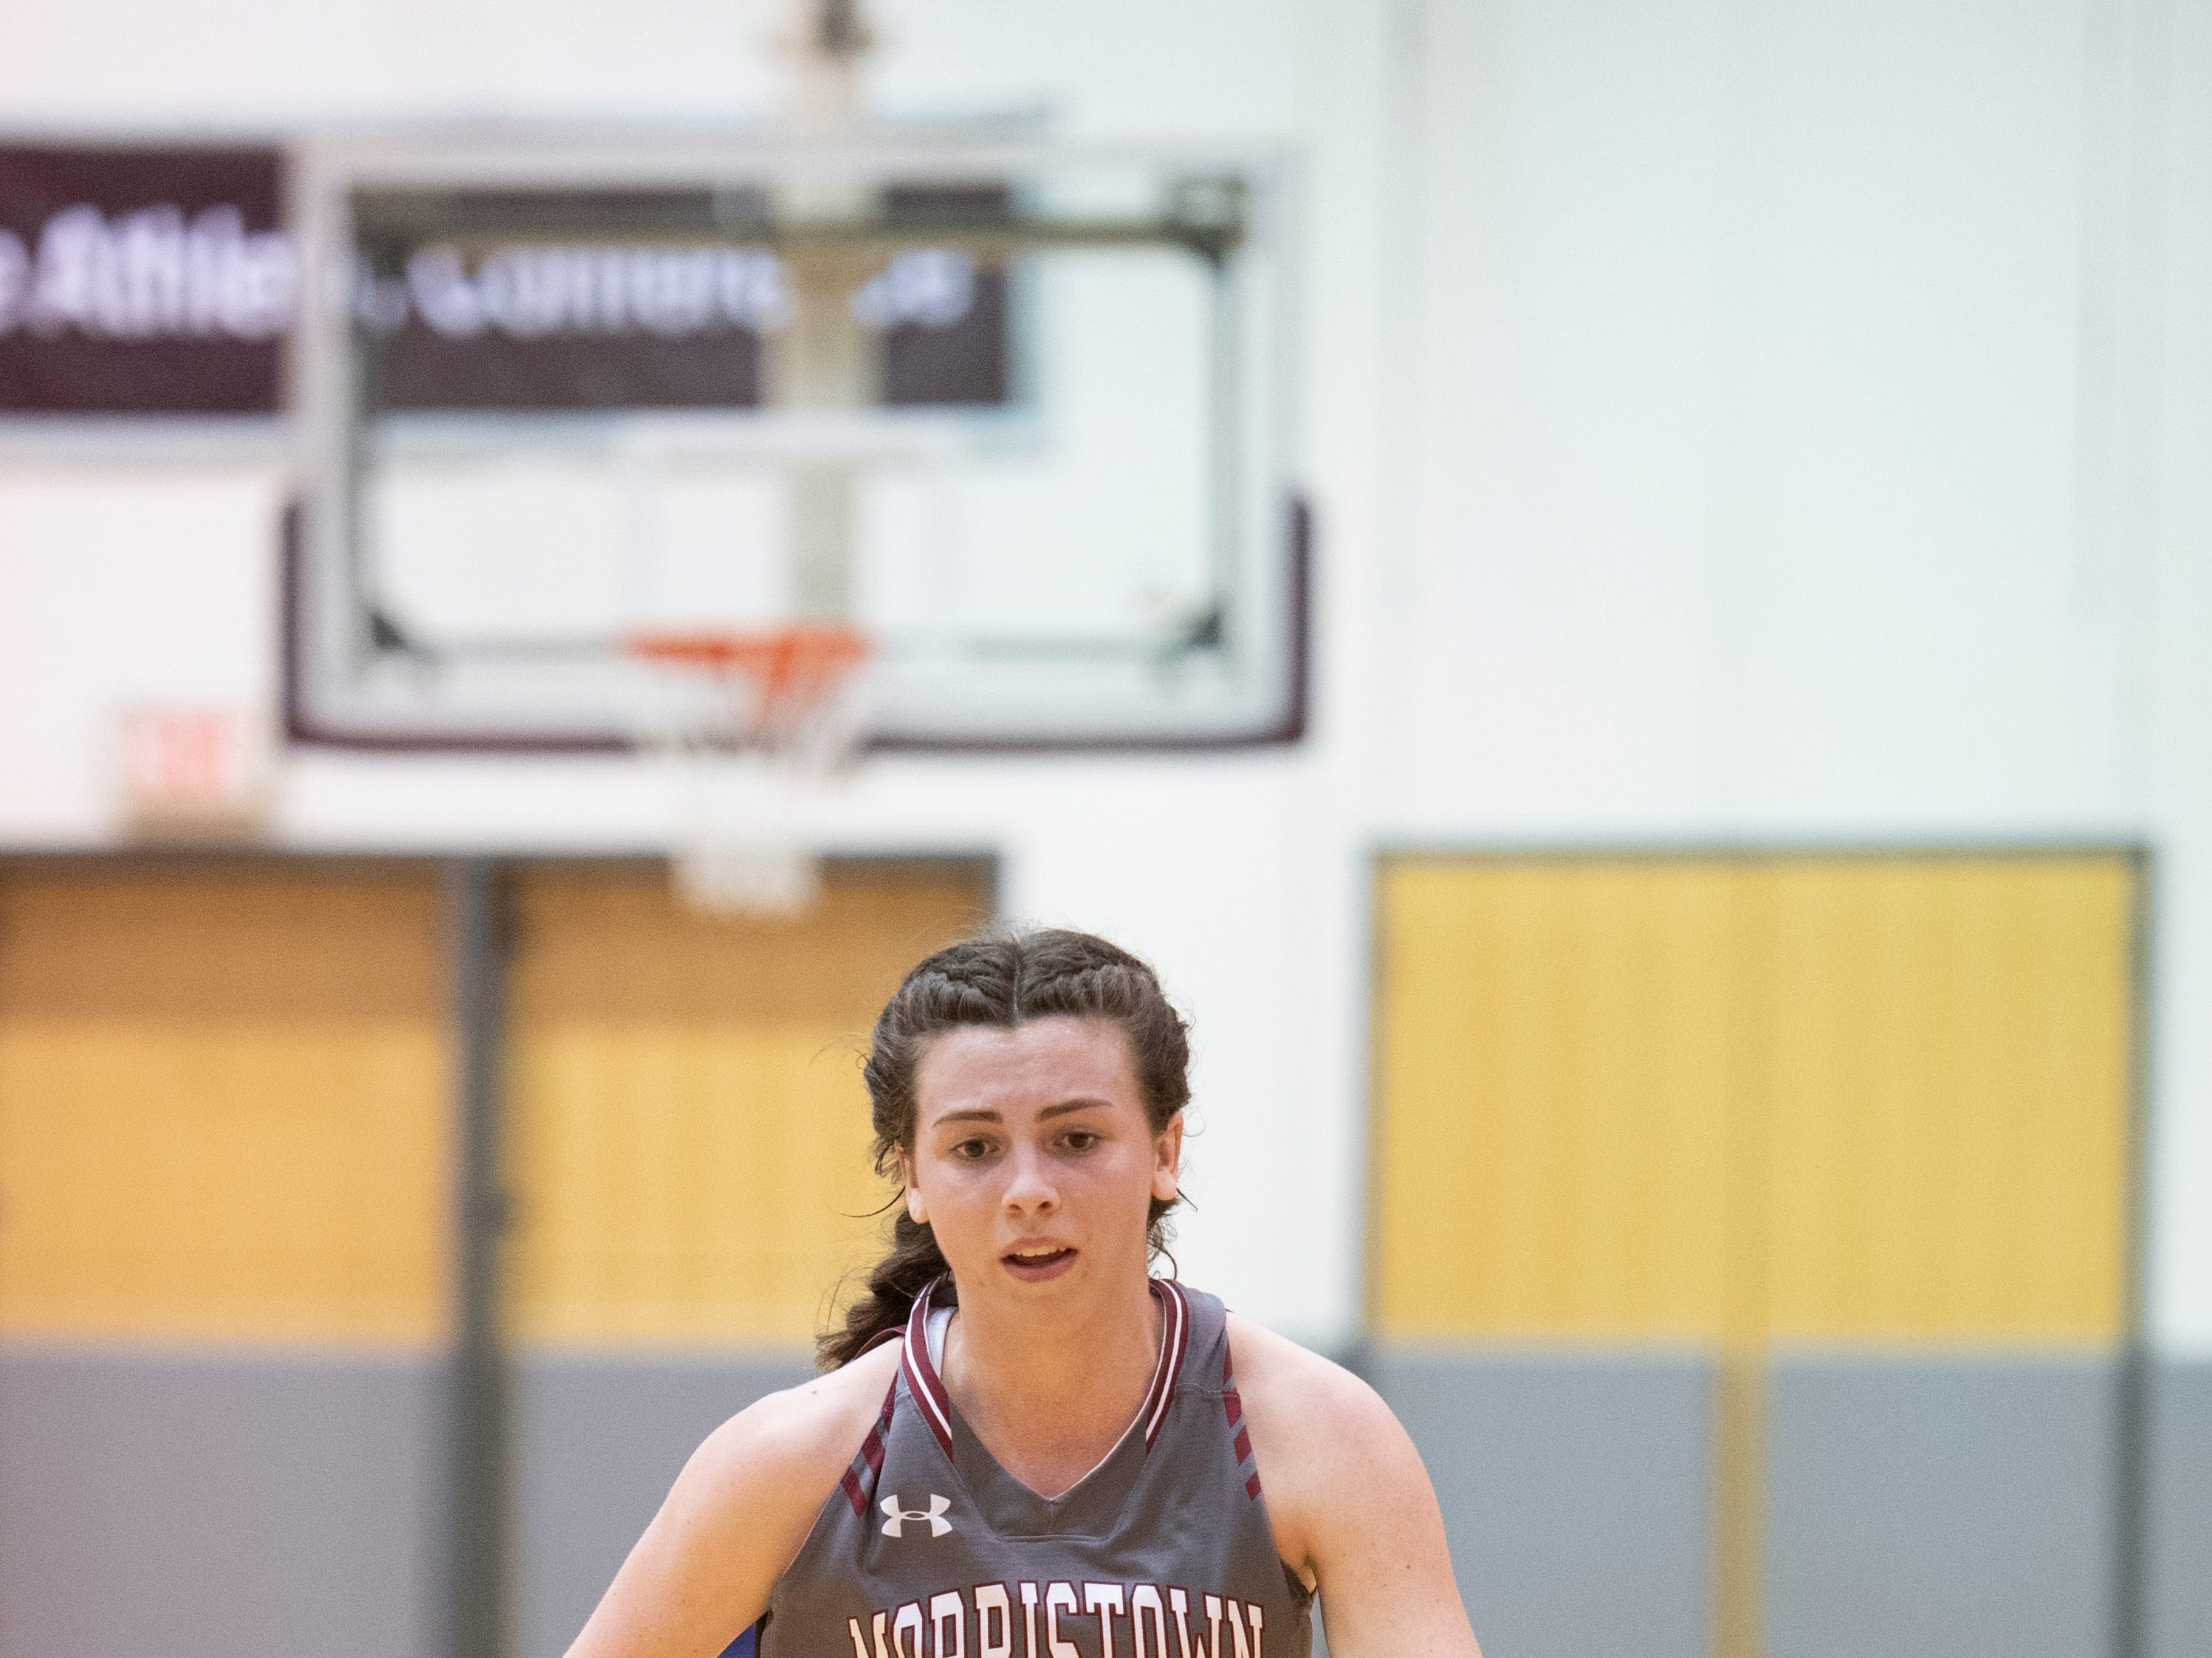 Chatham vs. Morristown-Beard in the Morris County Tournament girls basketball final at the County College of Morris in Randolph on Friday, February 22, 2019. MB #24 Bridget Monaghan.